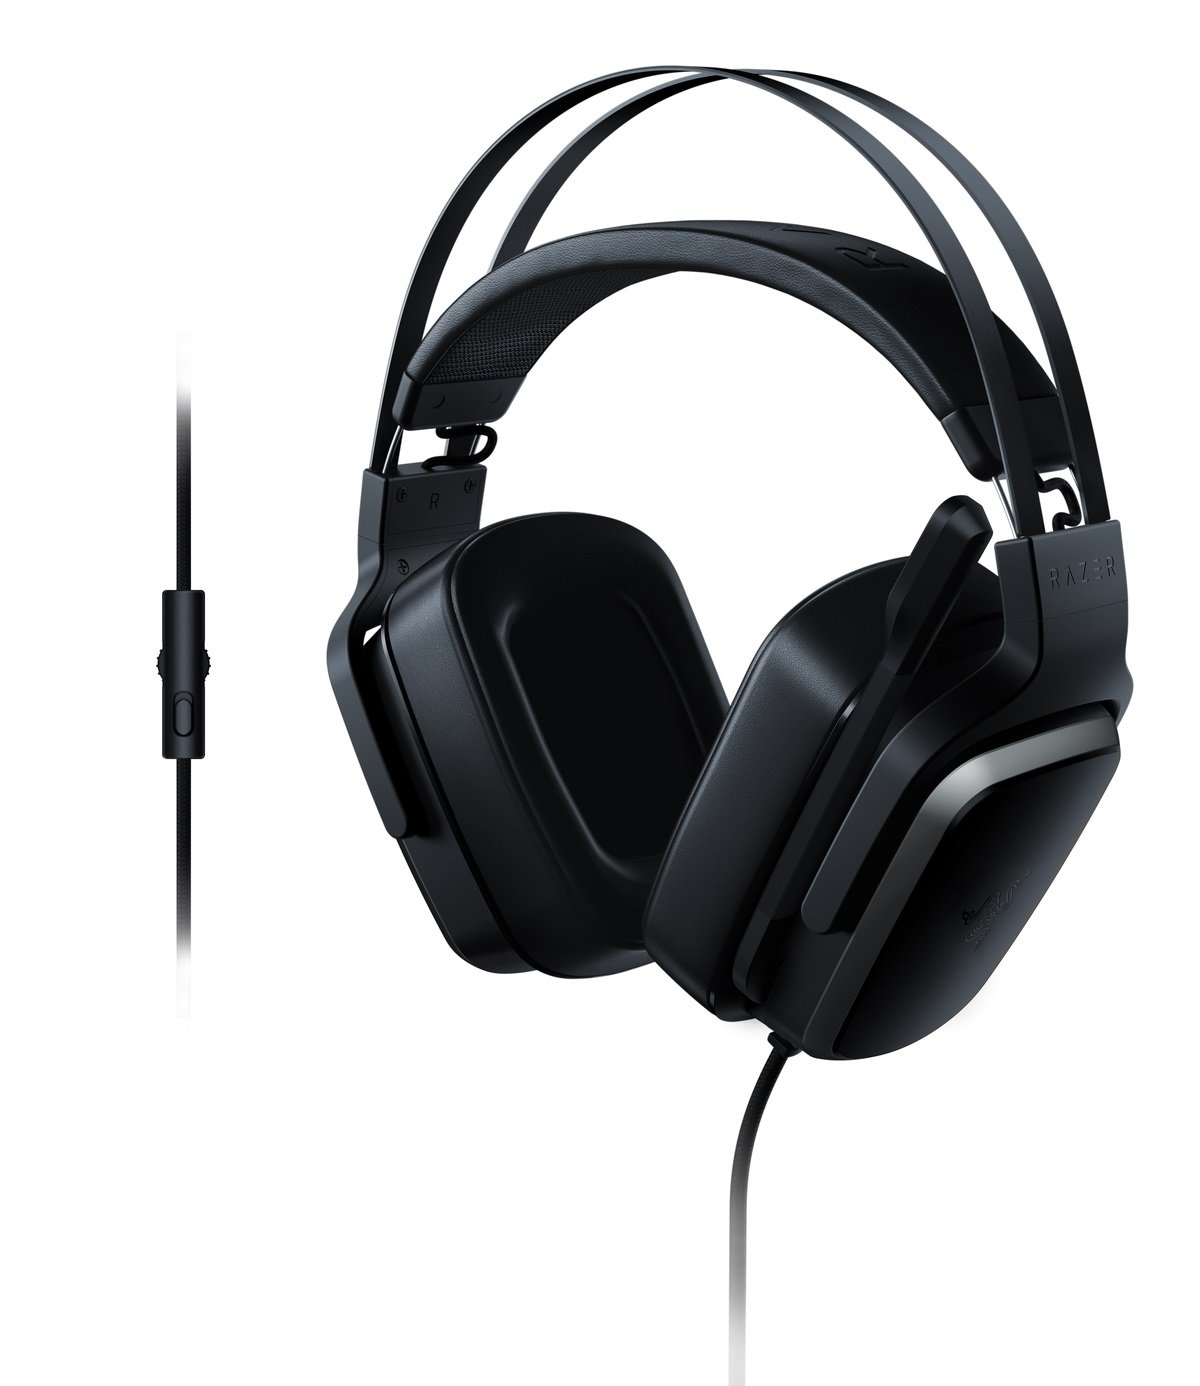 Razer Tiamat 2.2 V2: Dual Subwoofers - in-Line Audio Control - Rotatable Boom Mic - Gaming Headset Works with PC, PS4, Xbox One, Switch, Mobile Devices